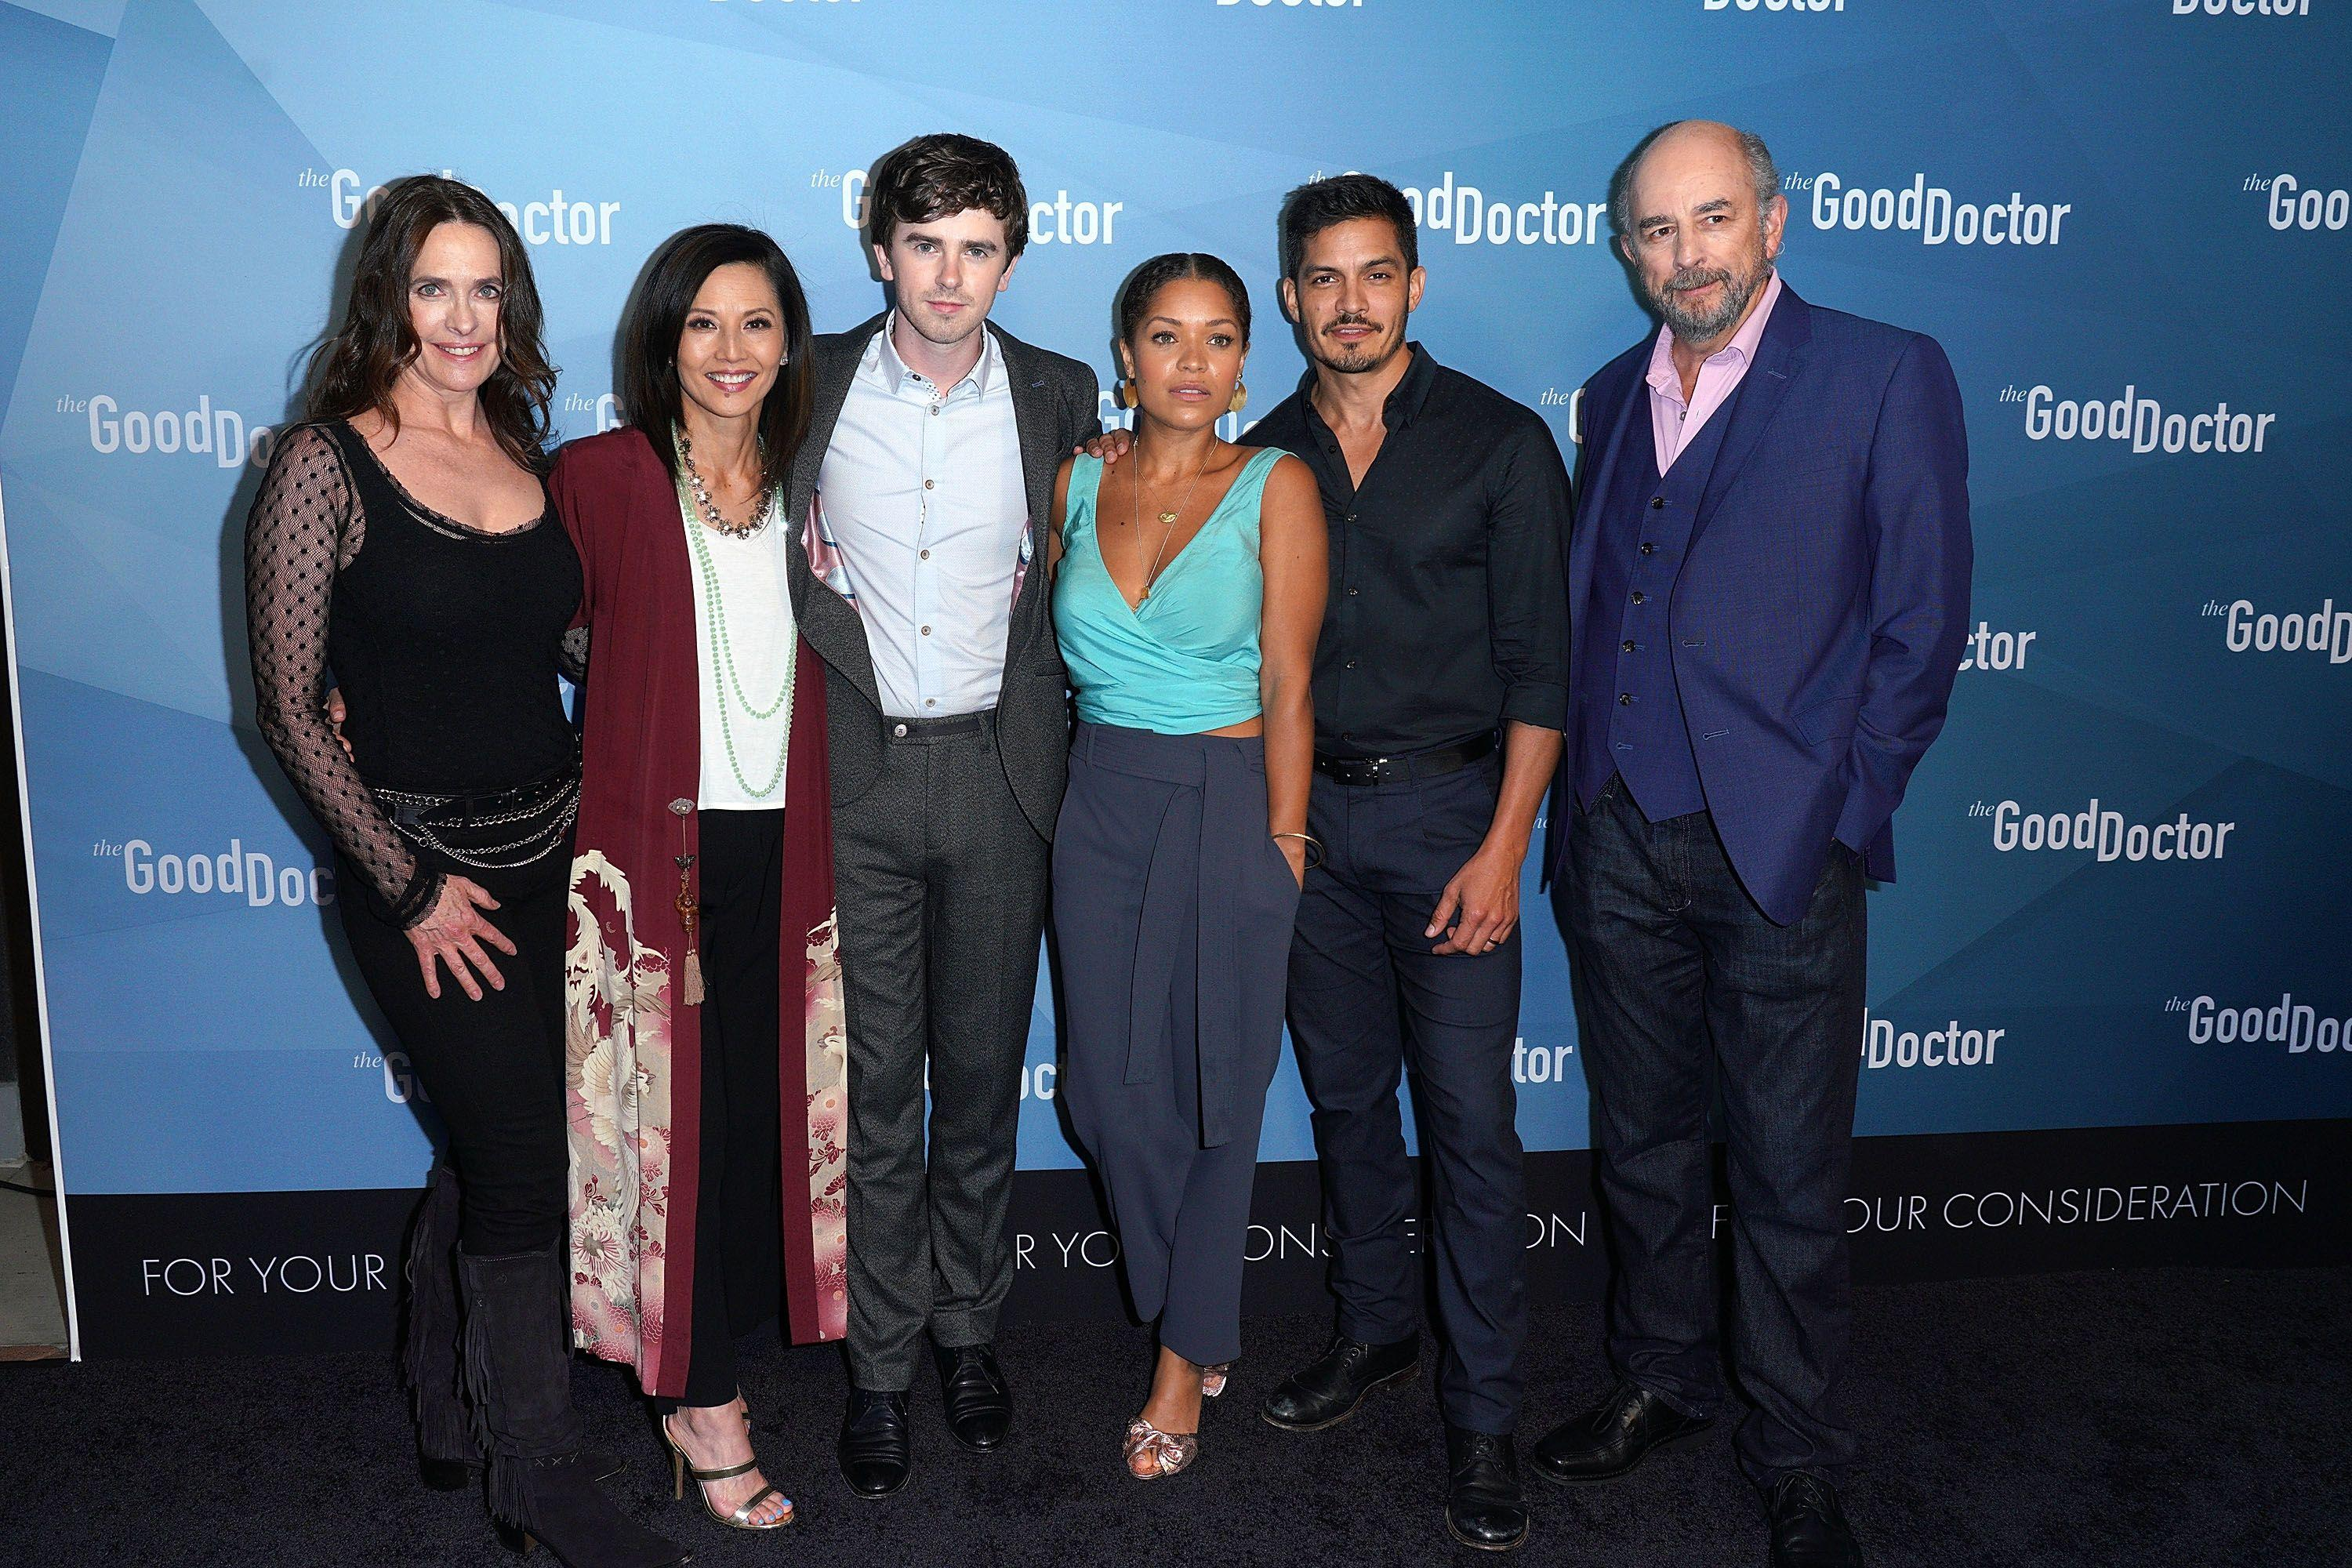 The Good Doctor Actors Open Up About How They Got Cast On The Show